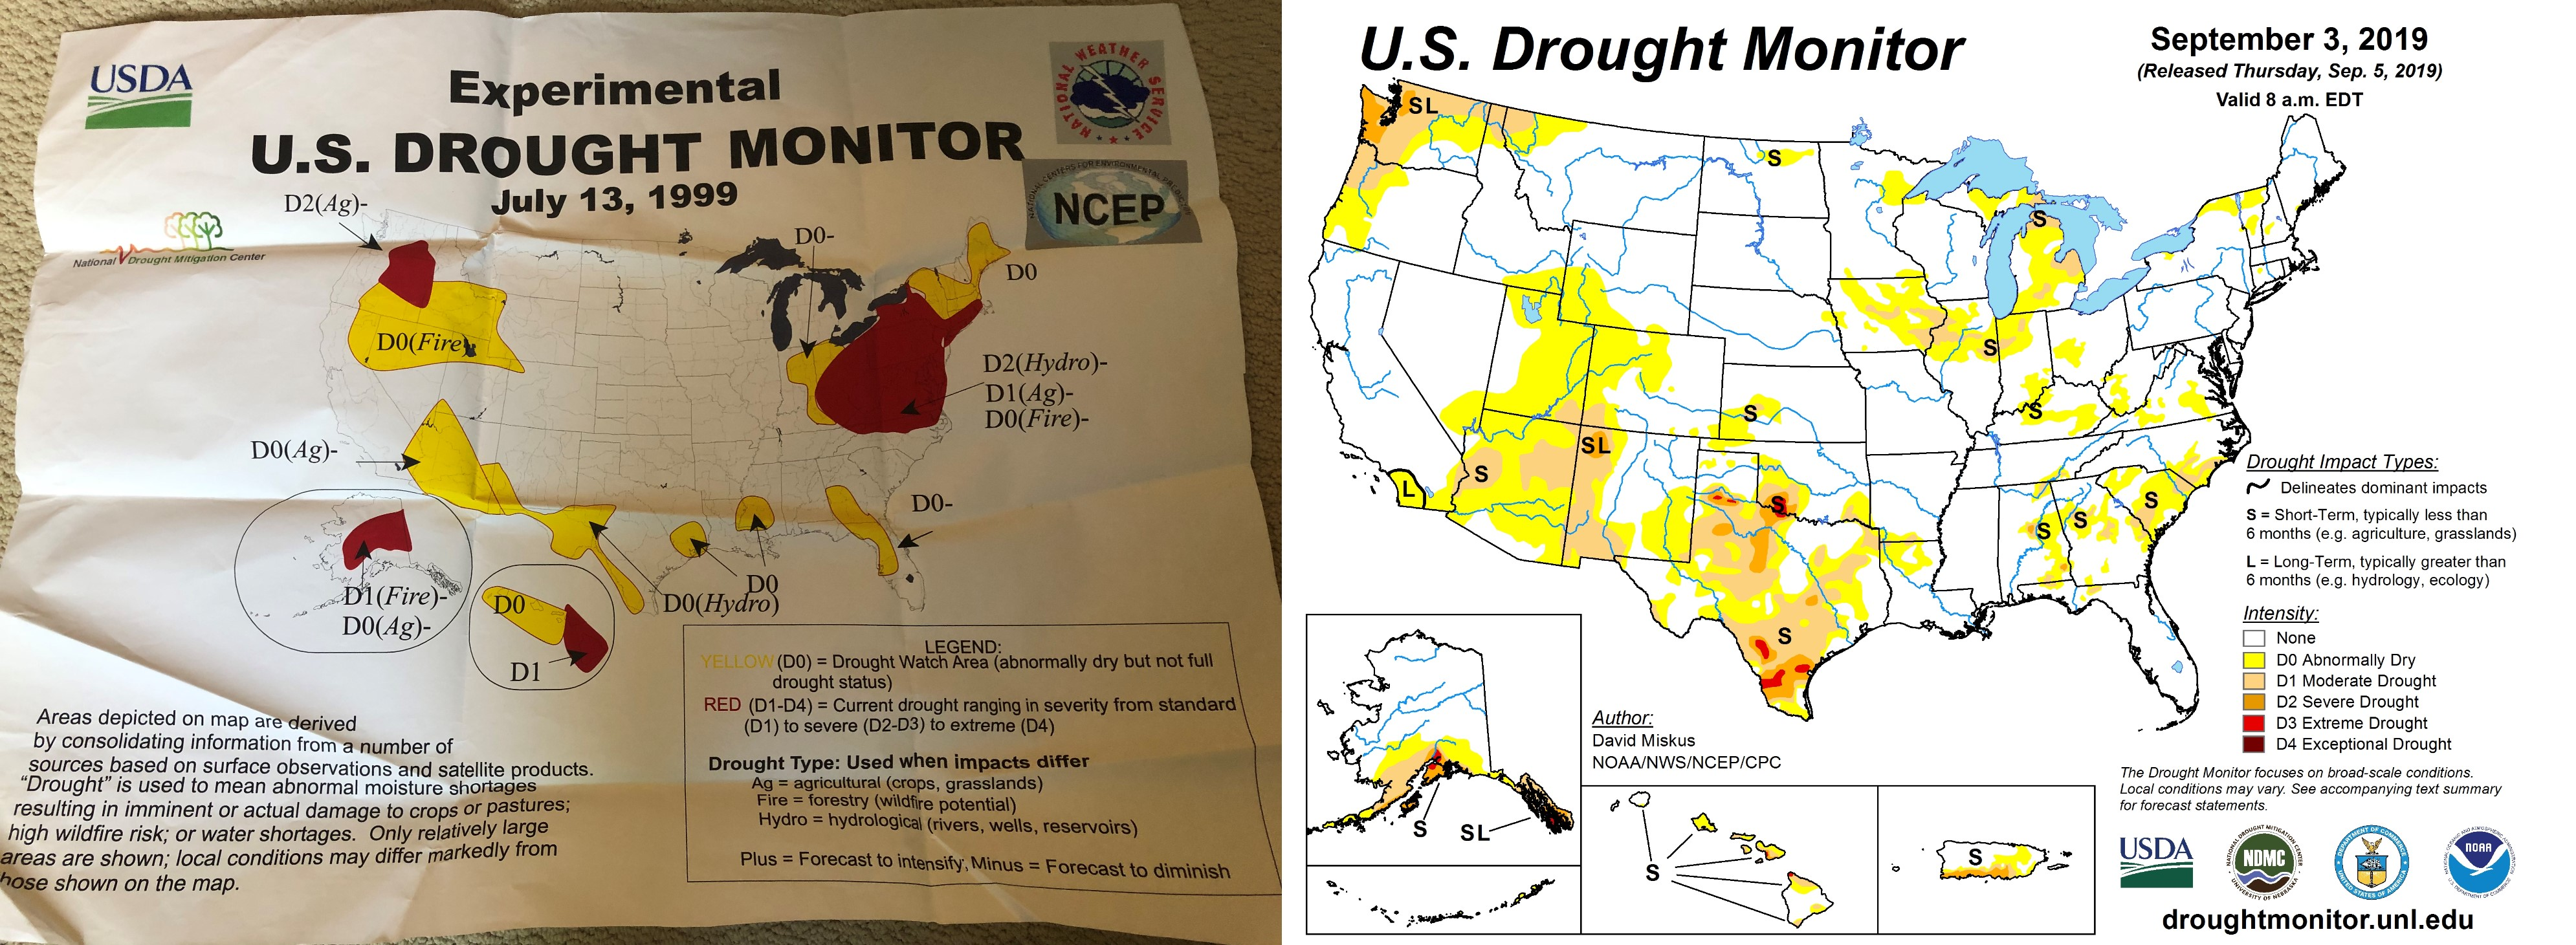 The U.S. Drought Monitor, then and now. | Courtesy of the National Drought Mitigation Center